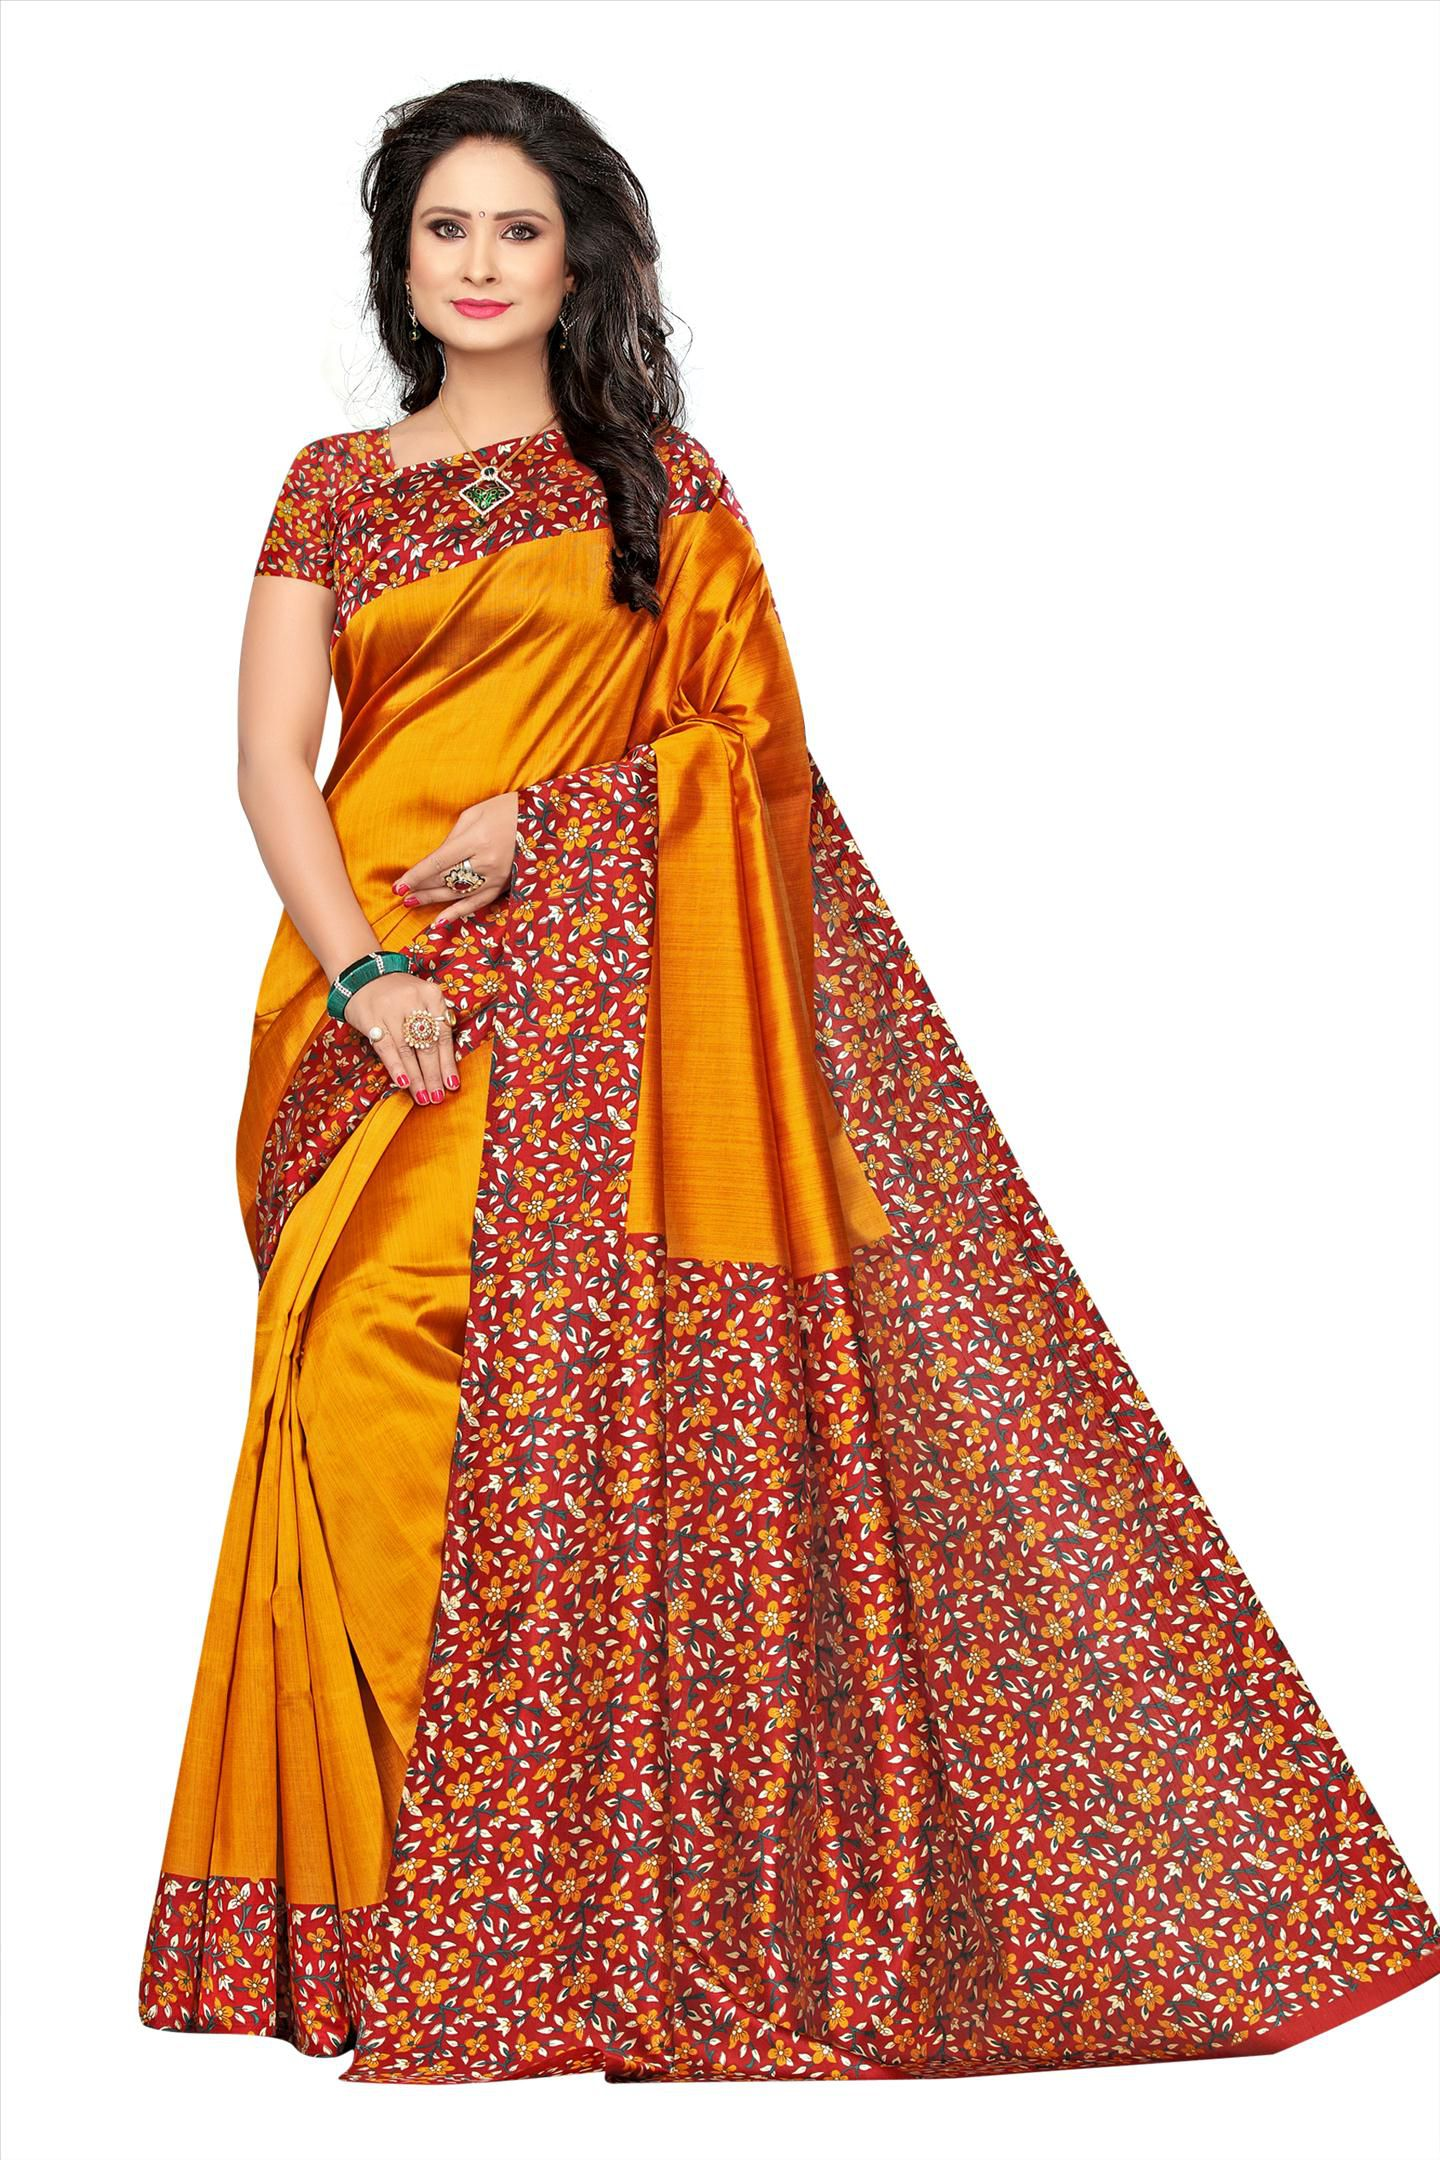 Hari Villa Creation Yellow Cotton Silk Saree